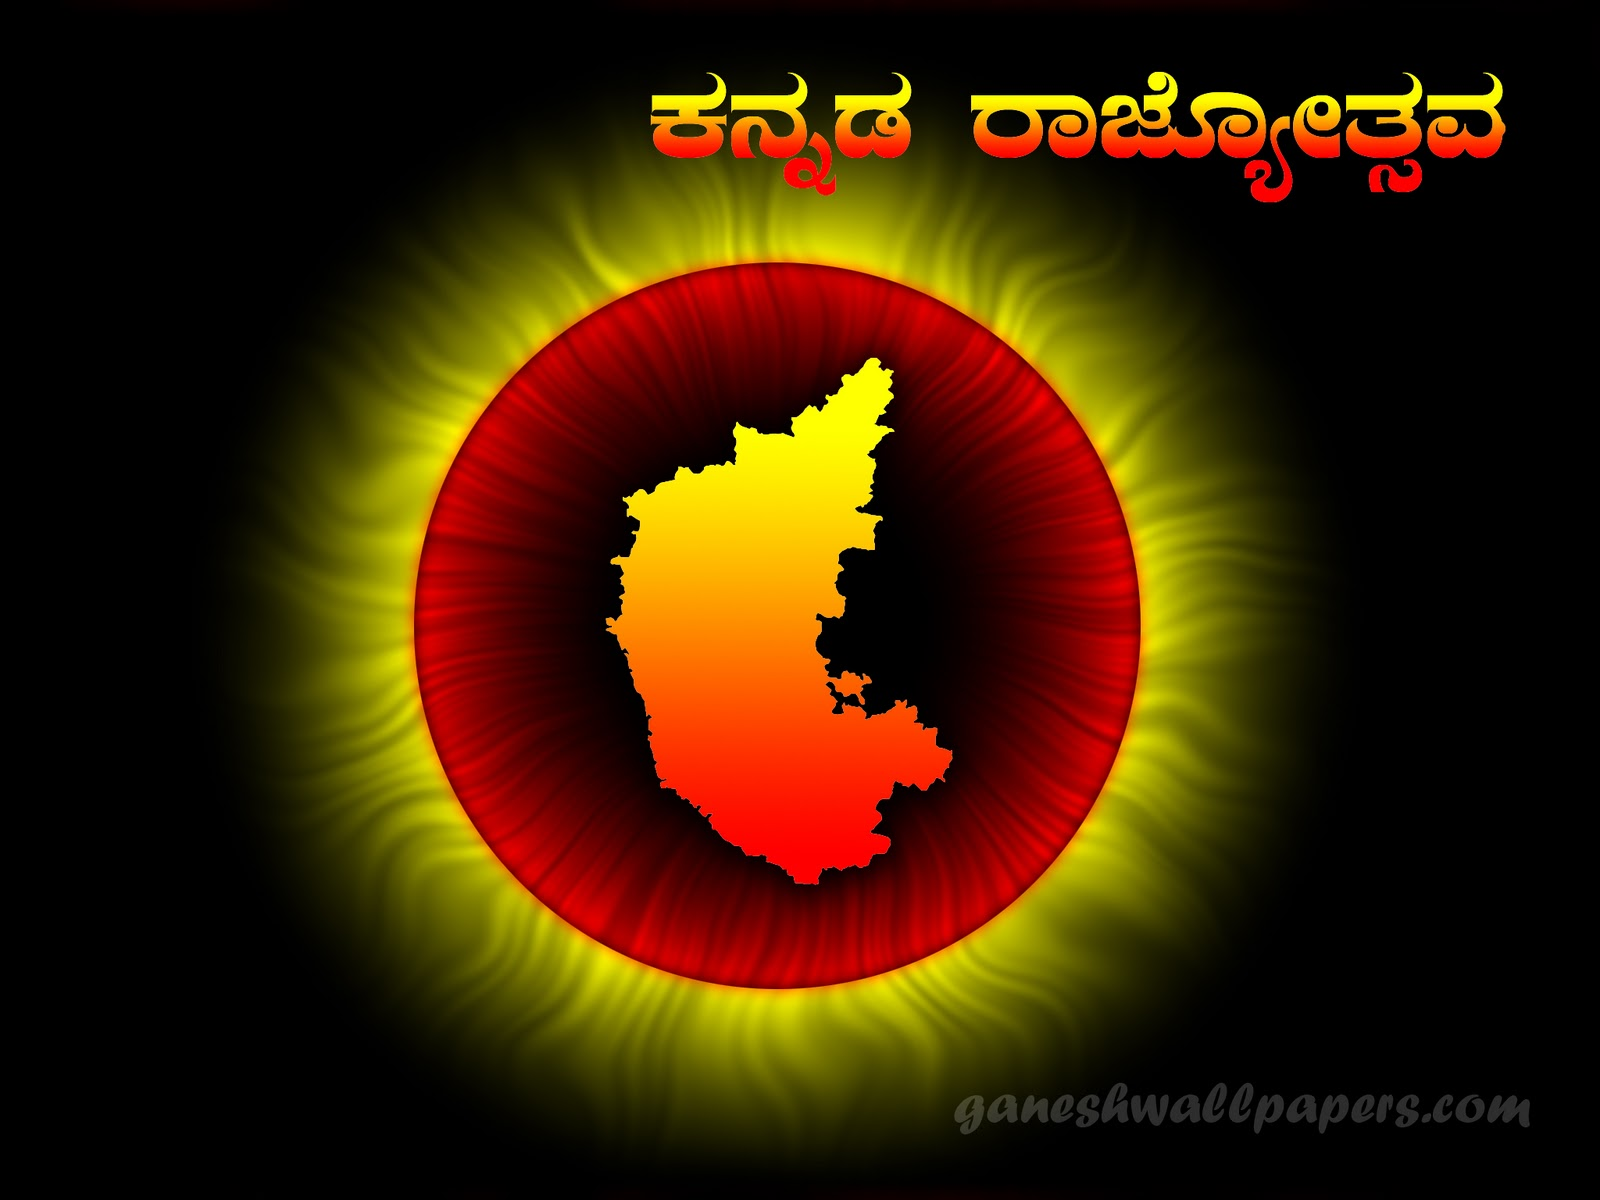 Kannada Love Hd Wallpaper : wallpapers name: Kannada Rajyotsava & History Of Karnataka